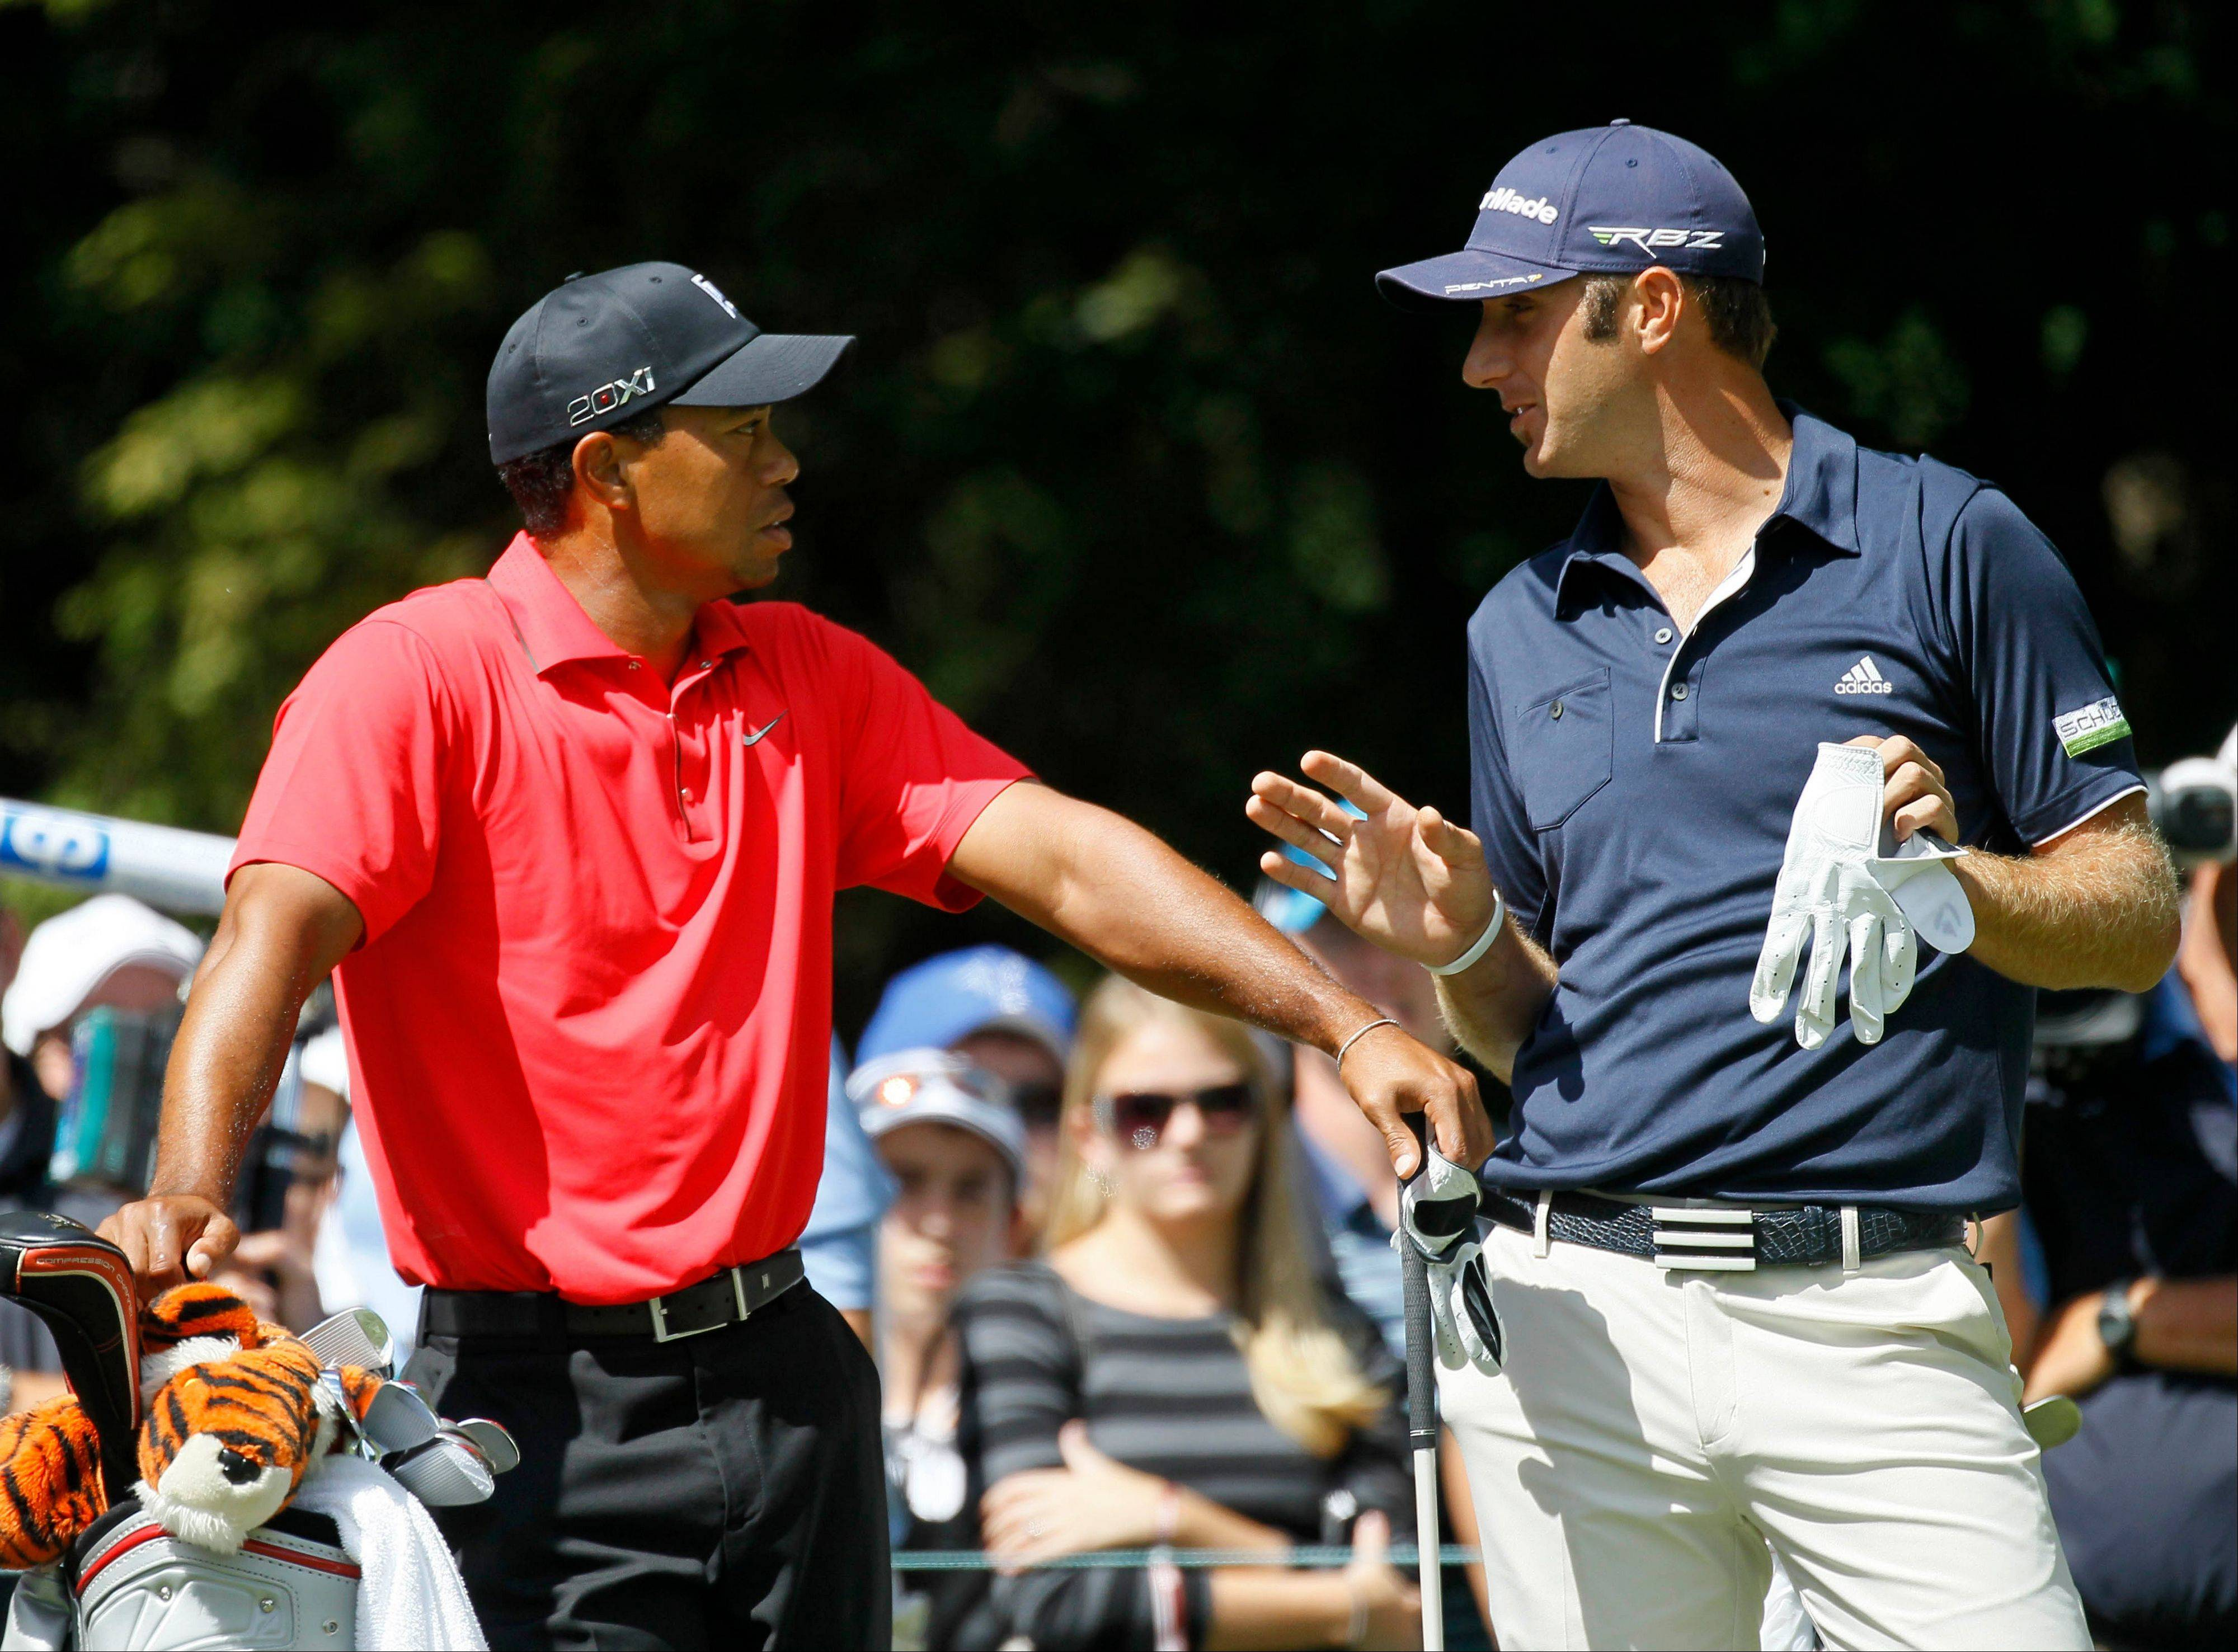 Tiger Wood, left, and Dustin Johnson will be teammates at the 39th Ryder Cup. They played together in the final round of the BMW Championship at Crooked Stick Golf Club in Carmel, Ind. on Sunday.